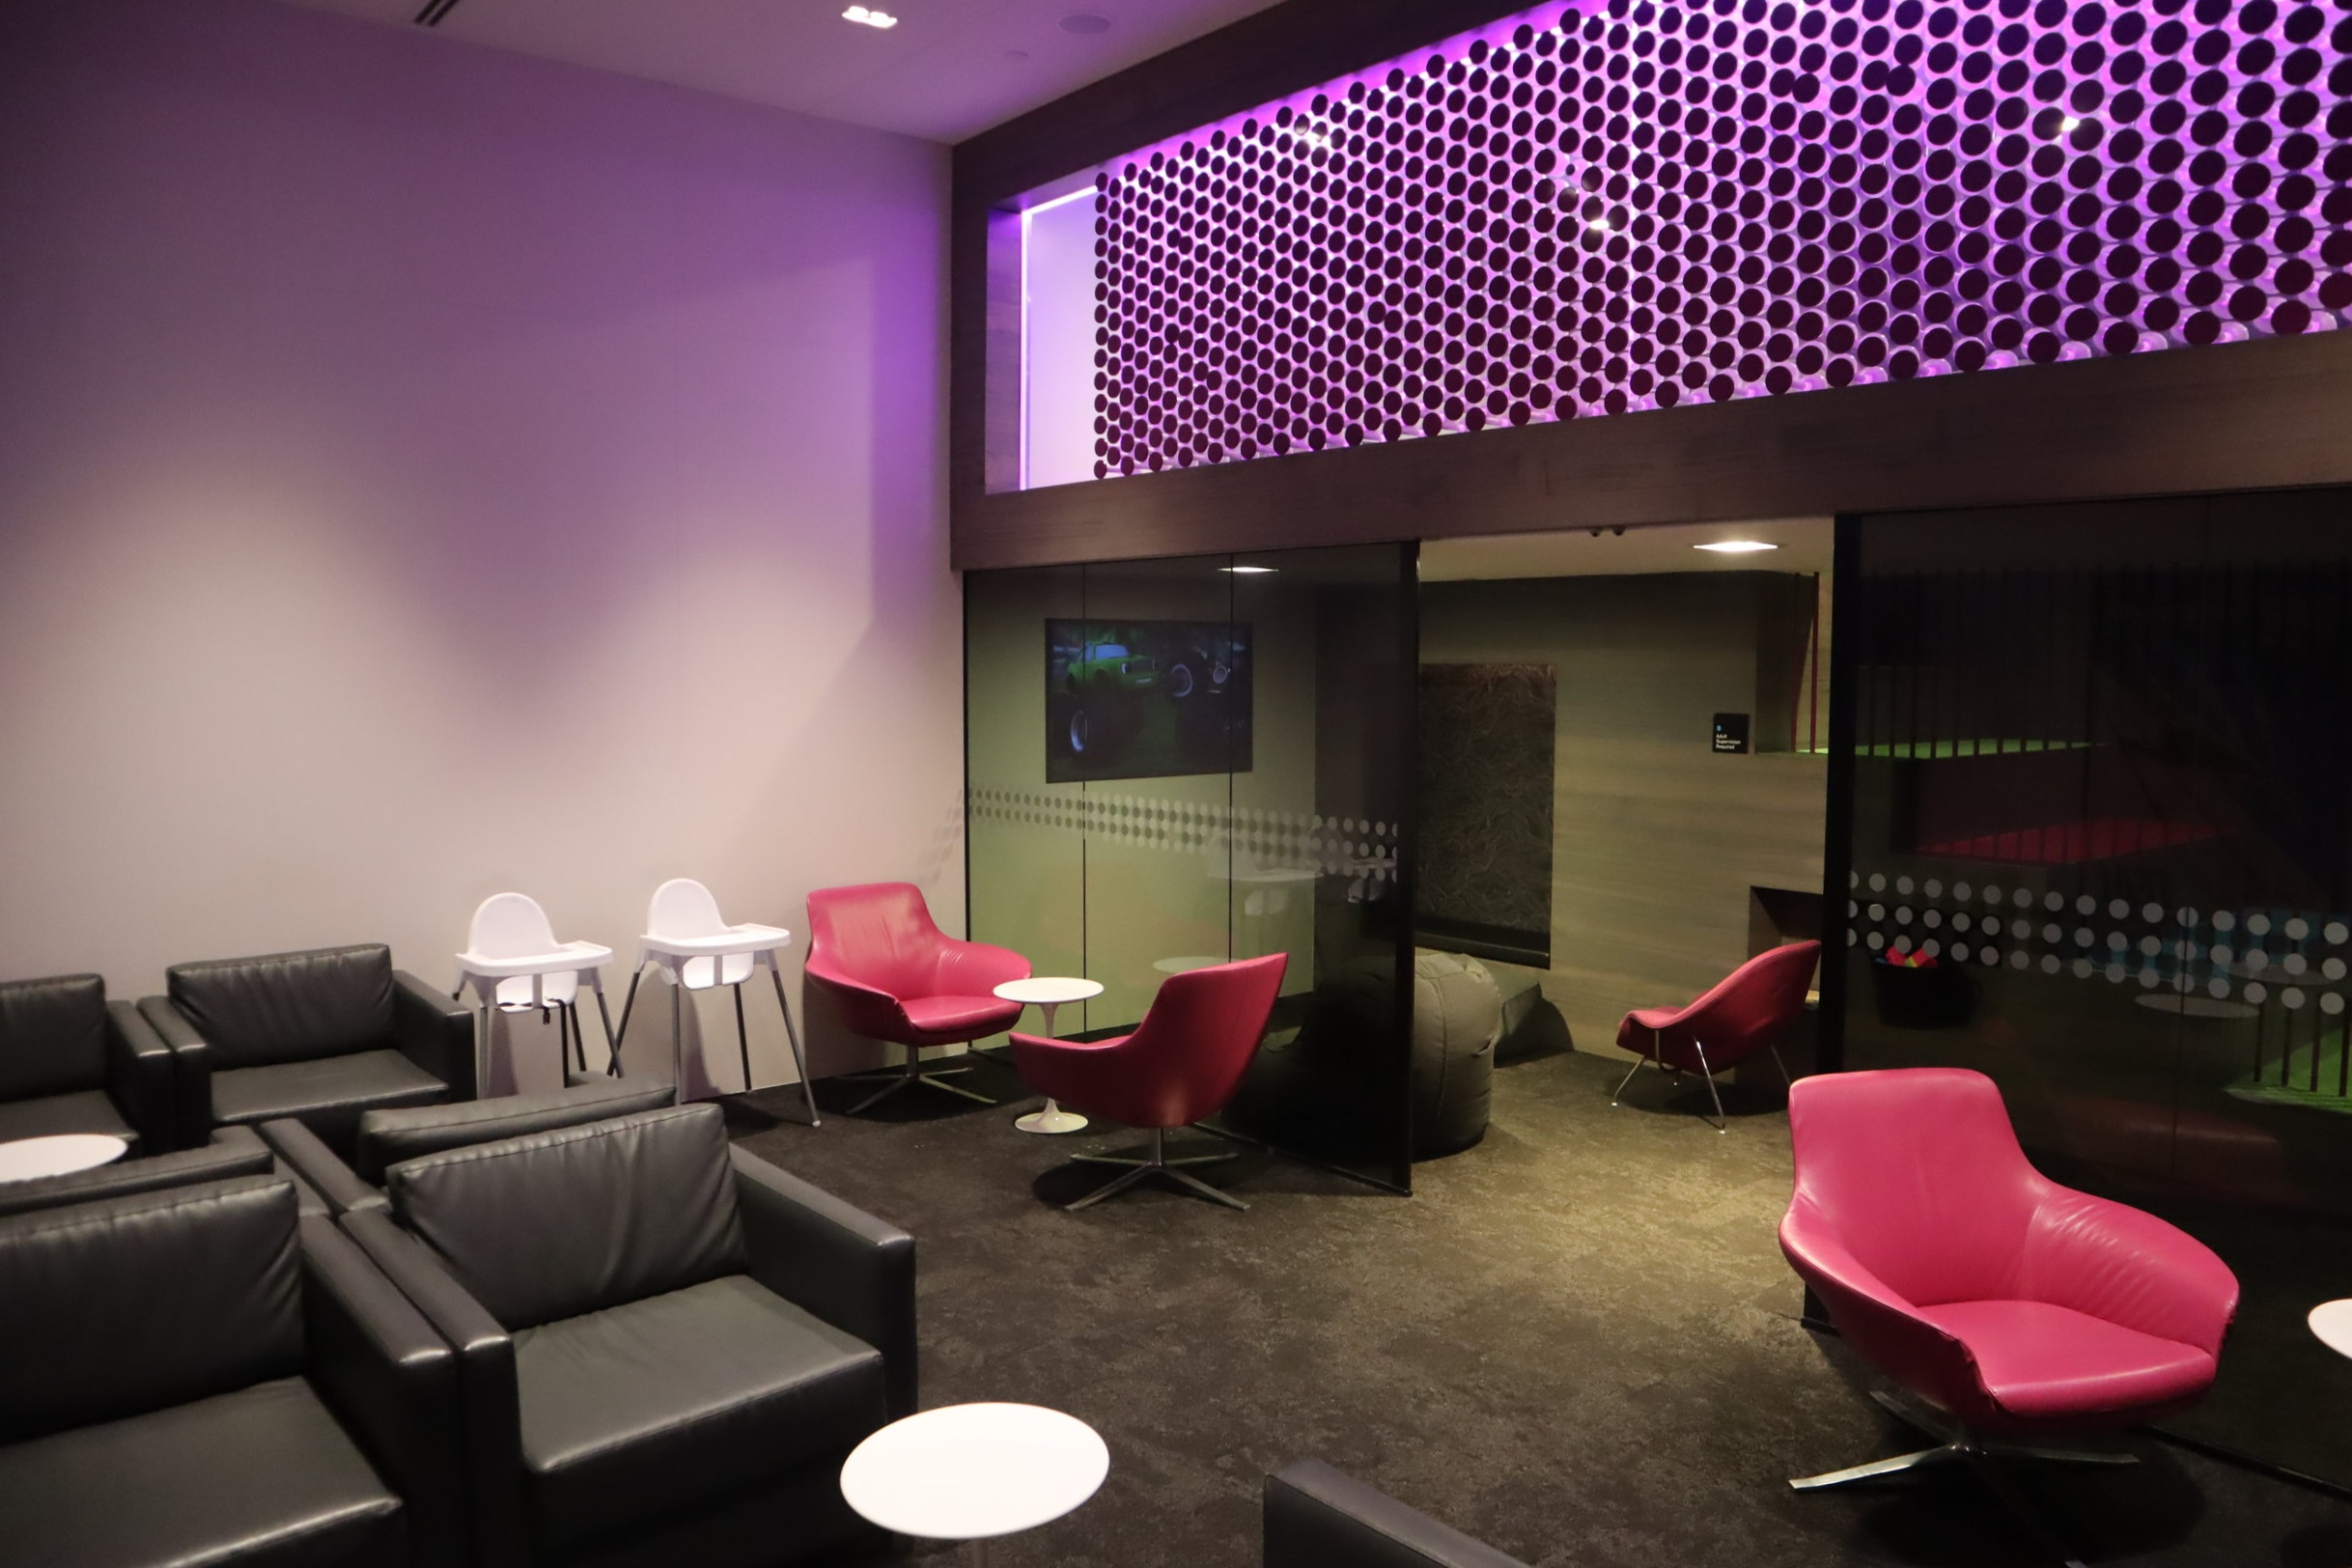 Air New Zealand Lounge Auckland – Kids' play room